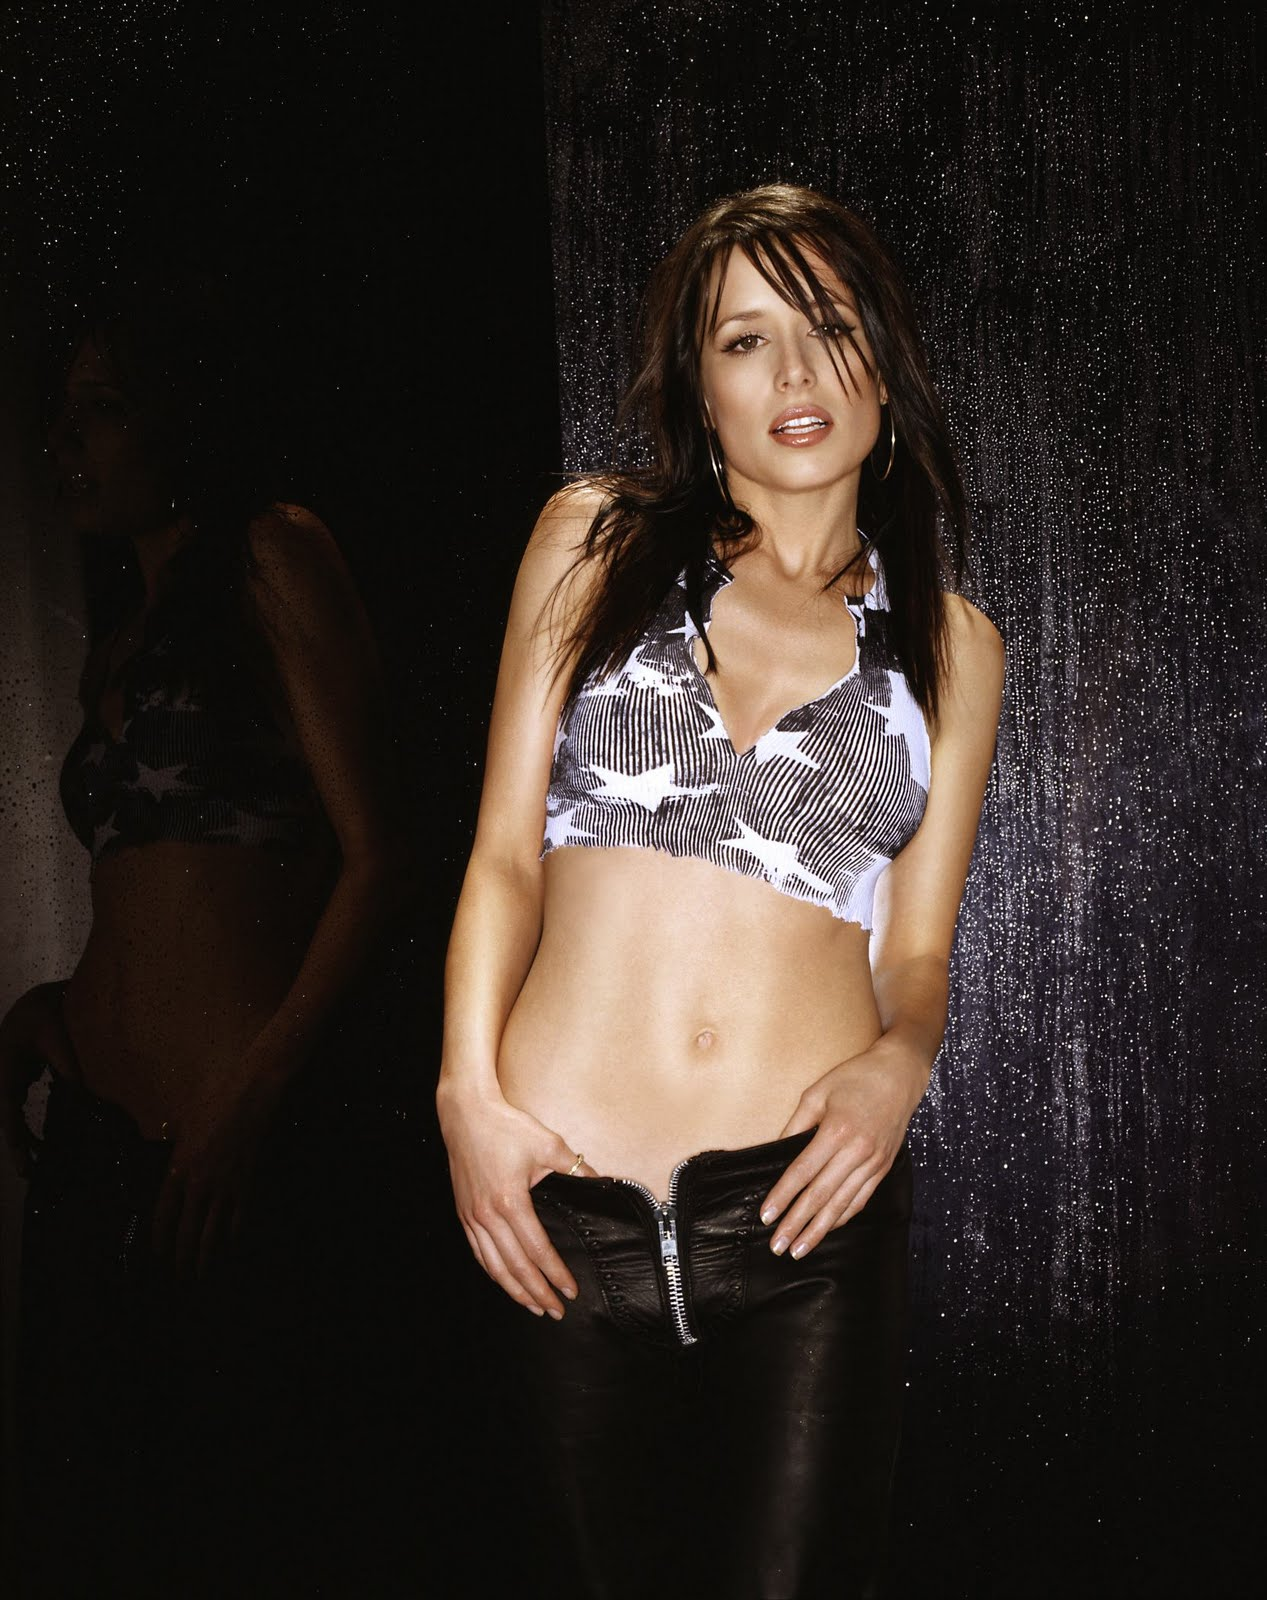 shawnee smith Layla El (born 25 June 1978)